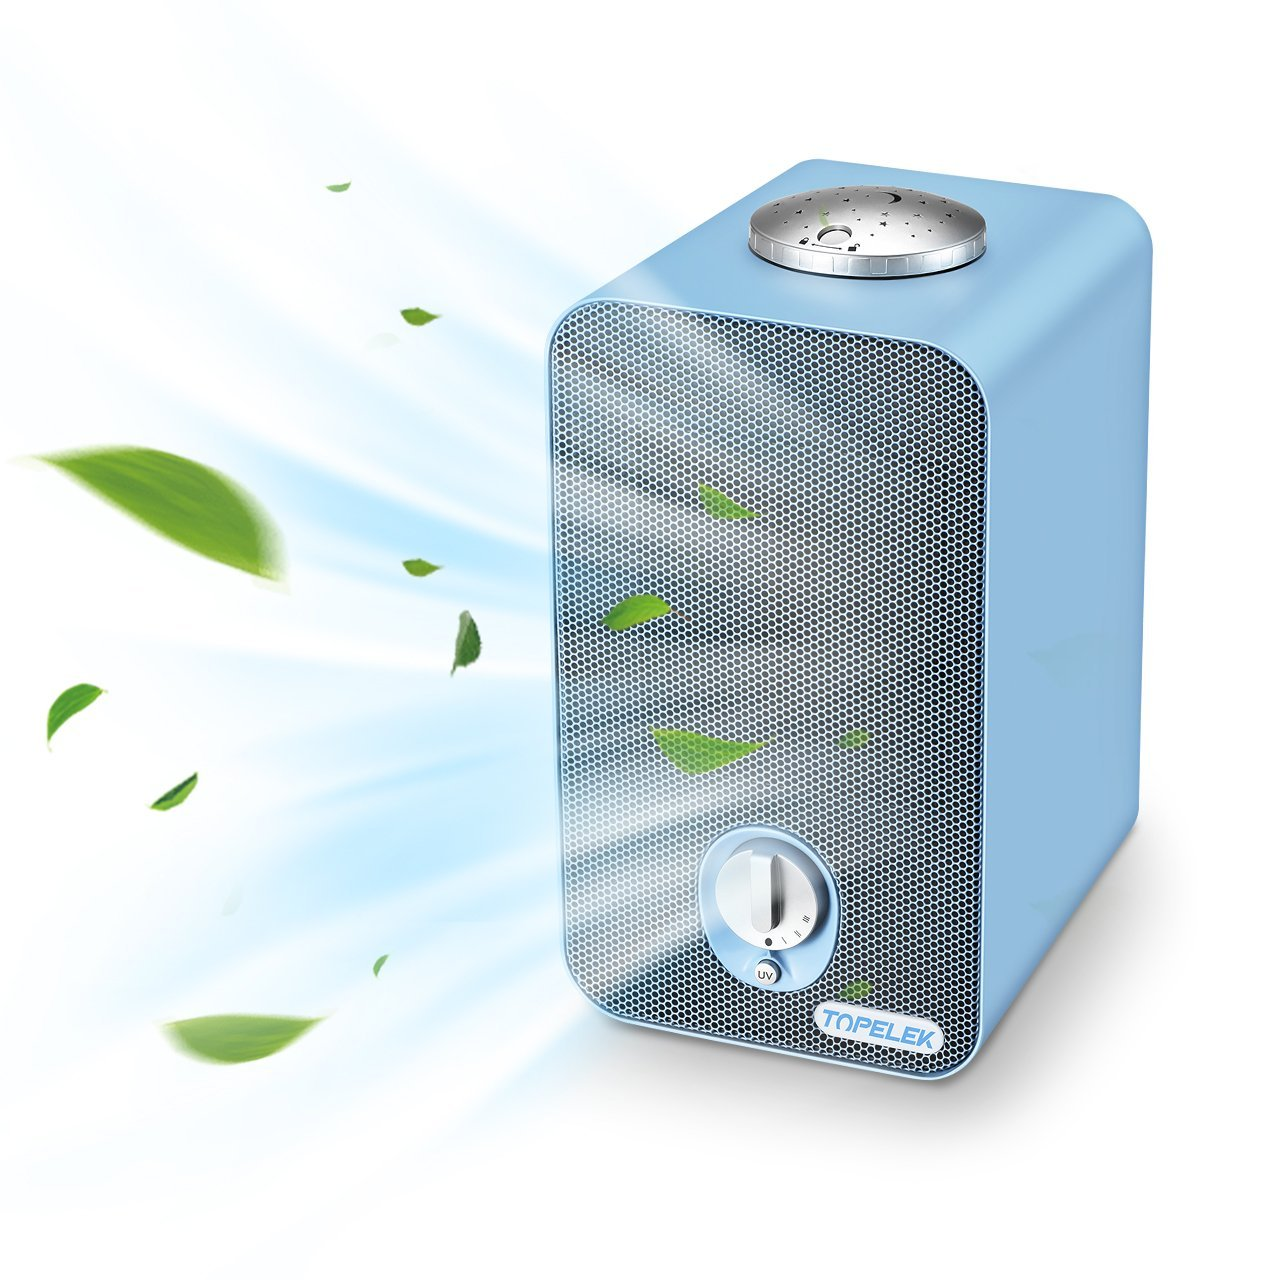 Air Purifier Home TOPELEK Air Cleaner with Ioniser HEPA& Active Carbon Filter UV light - 3 Speed Room Purifier Fan with Top Projector for Allergies, Pollen, Dust, Pet Dander (215sq.ft, CADR 100)